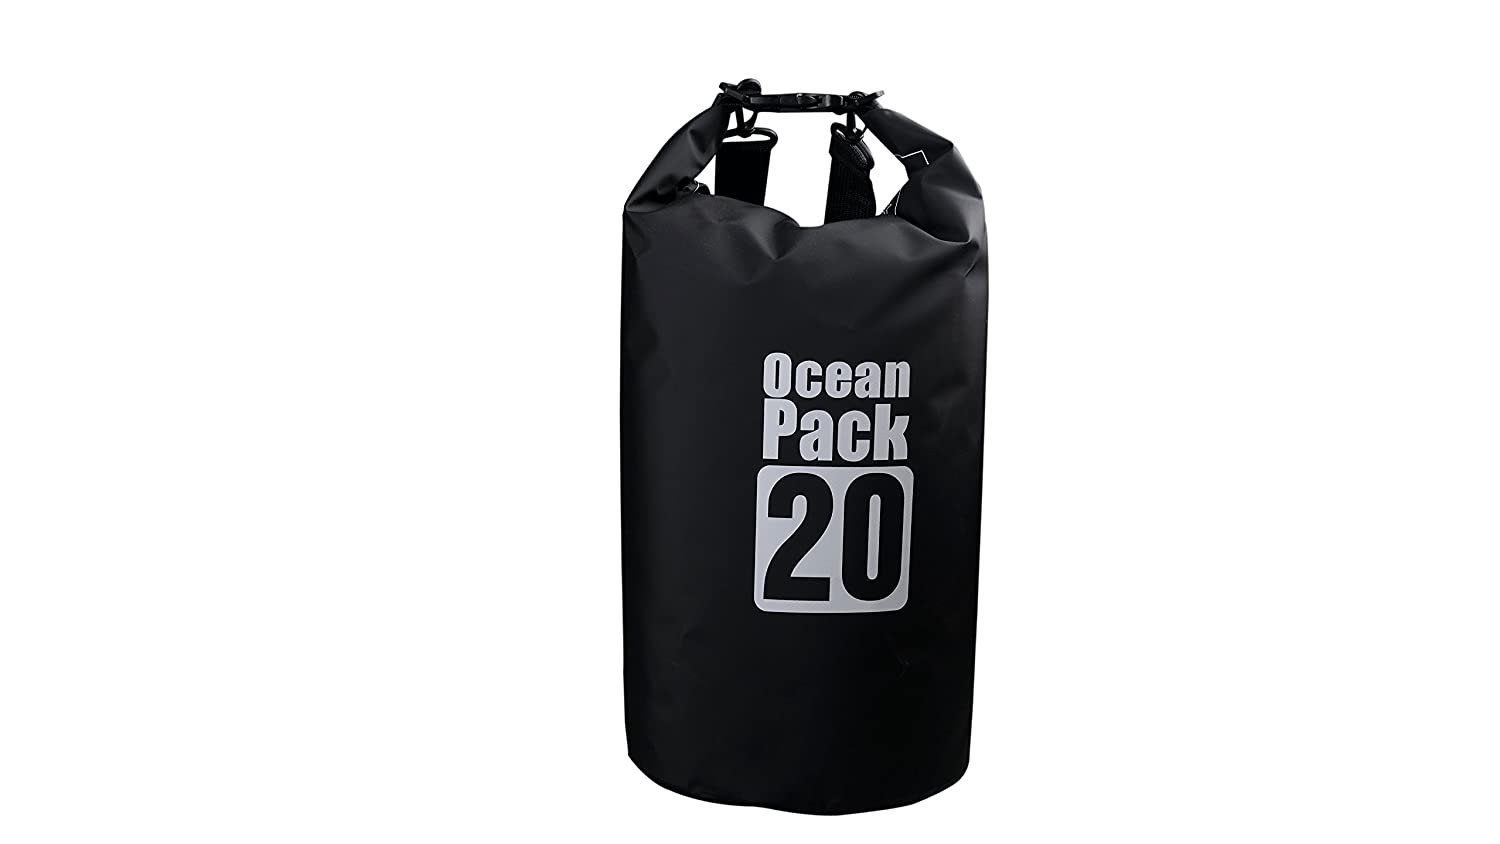 ProOffer 2L/3L/5L/10L/15L/20L/30L 500D Tarpaulin Heavey-Duty PVC Water Proof Dry Bag Sack for Kayaking/Boating/Canoeing/Fishing/Rafting/Swimming/Camping/Snowboarding